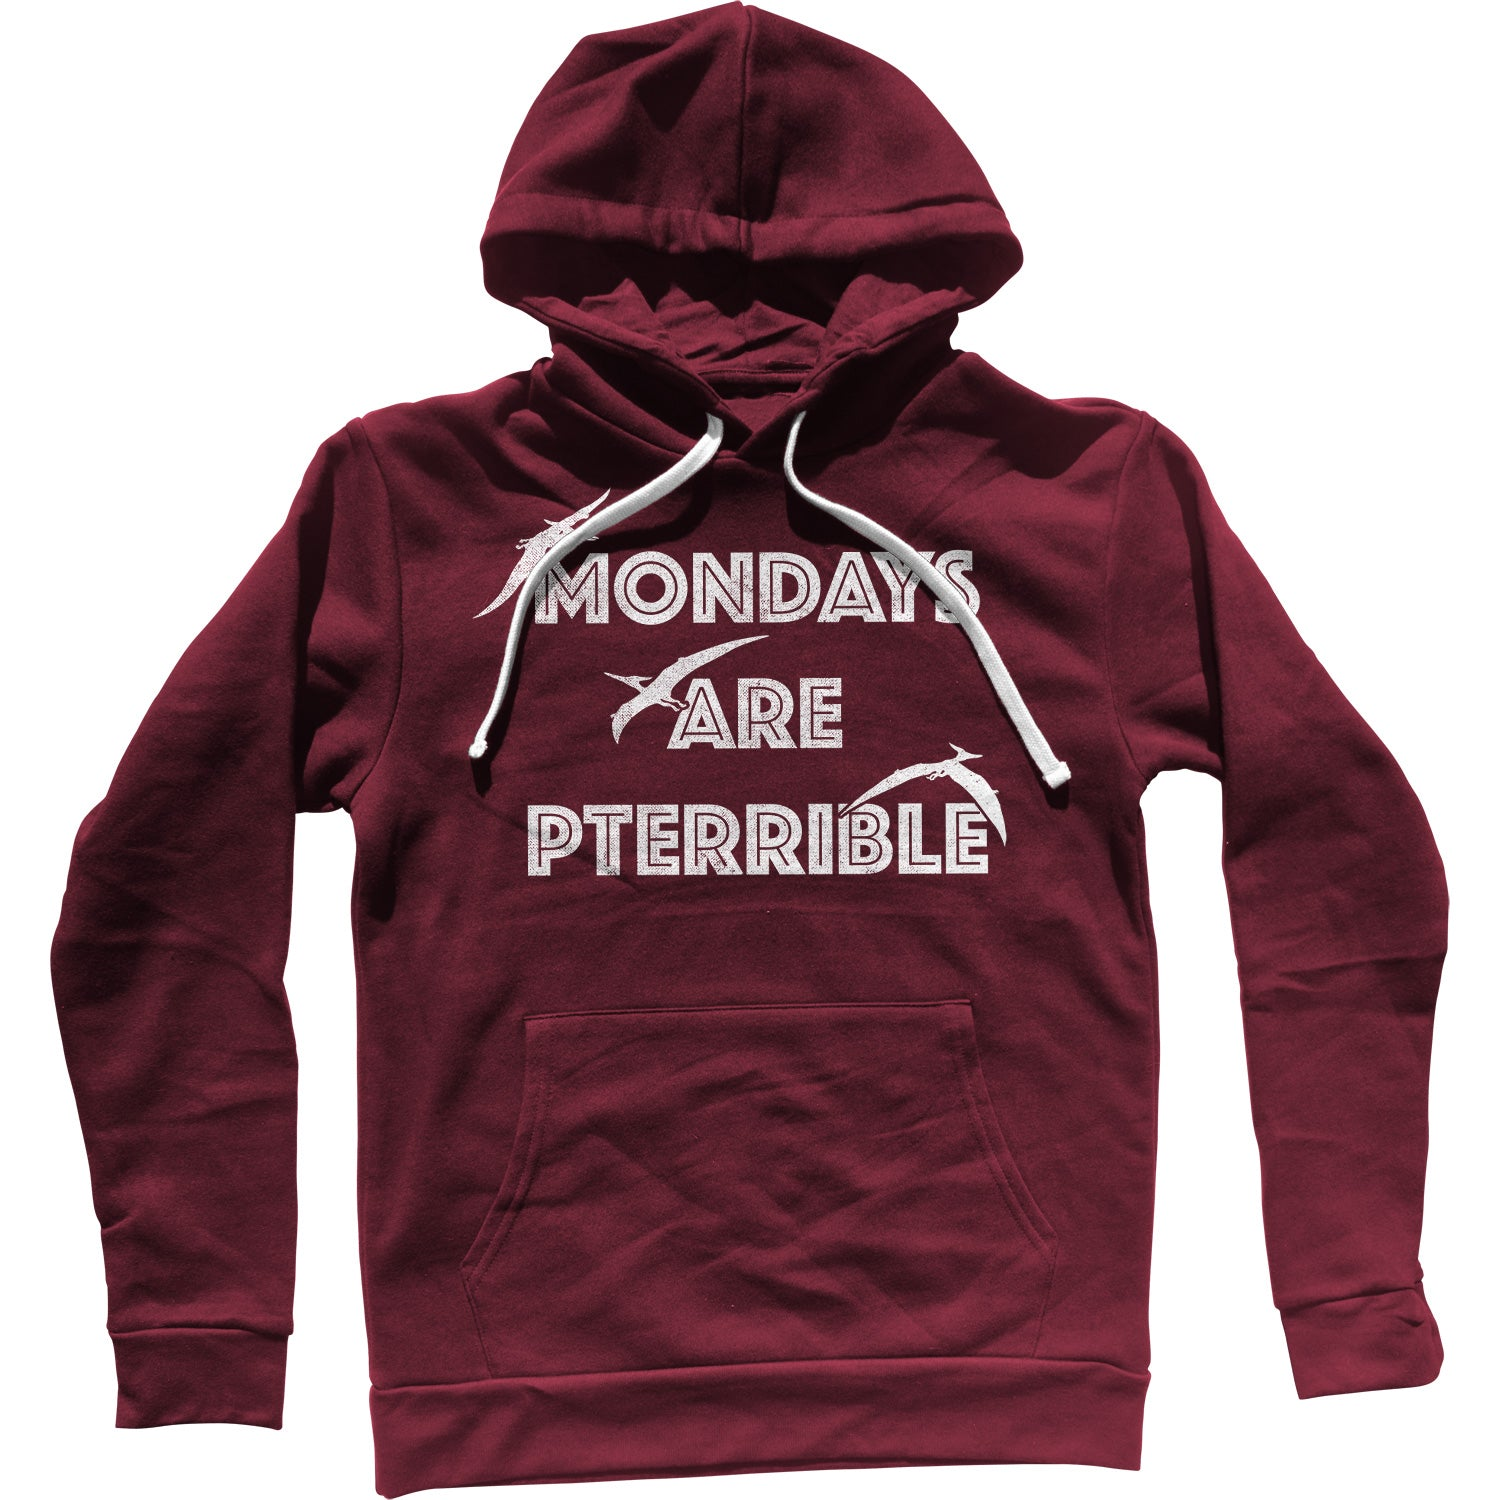 Mondays Are Pterrible Unisex Hoodie